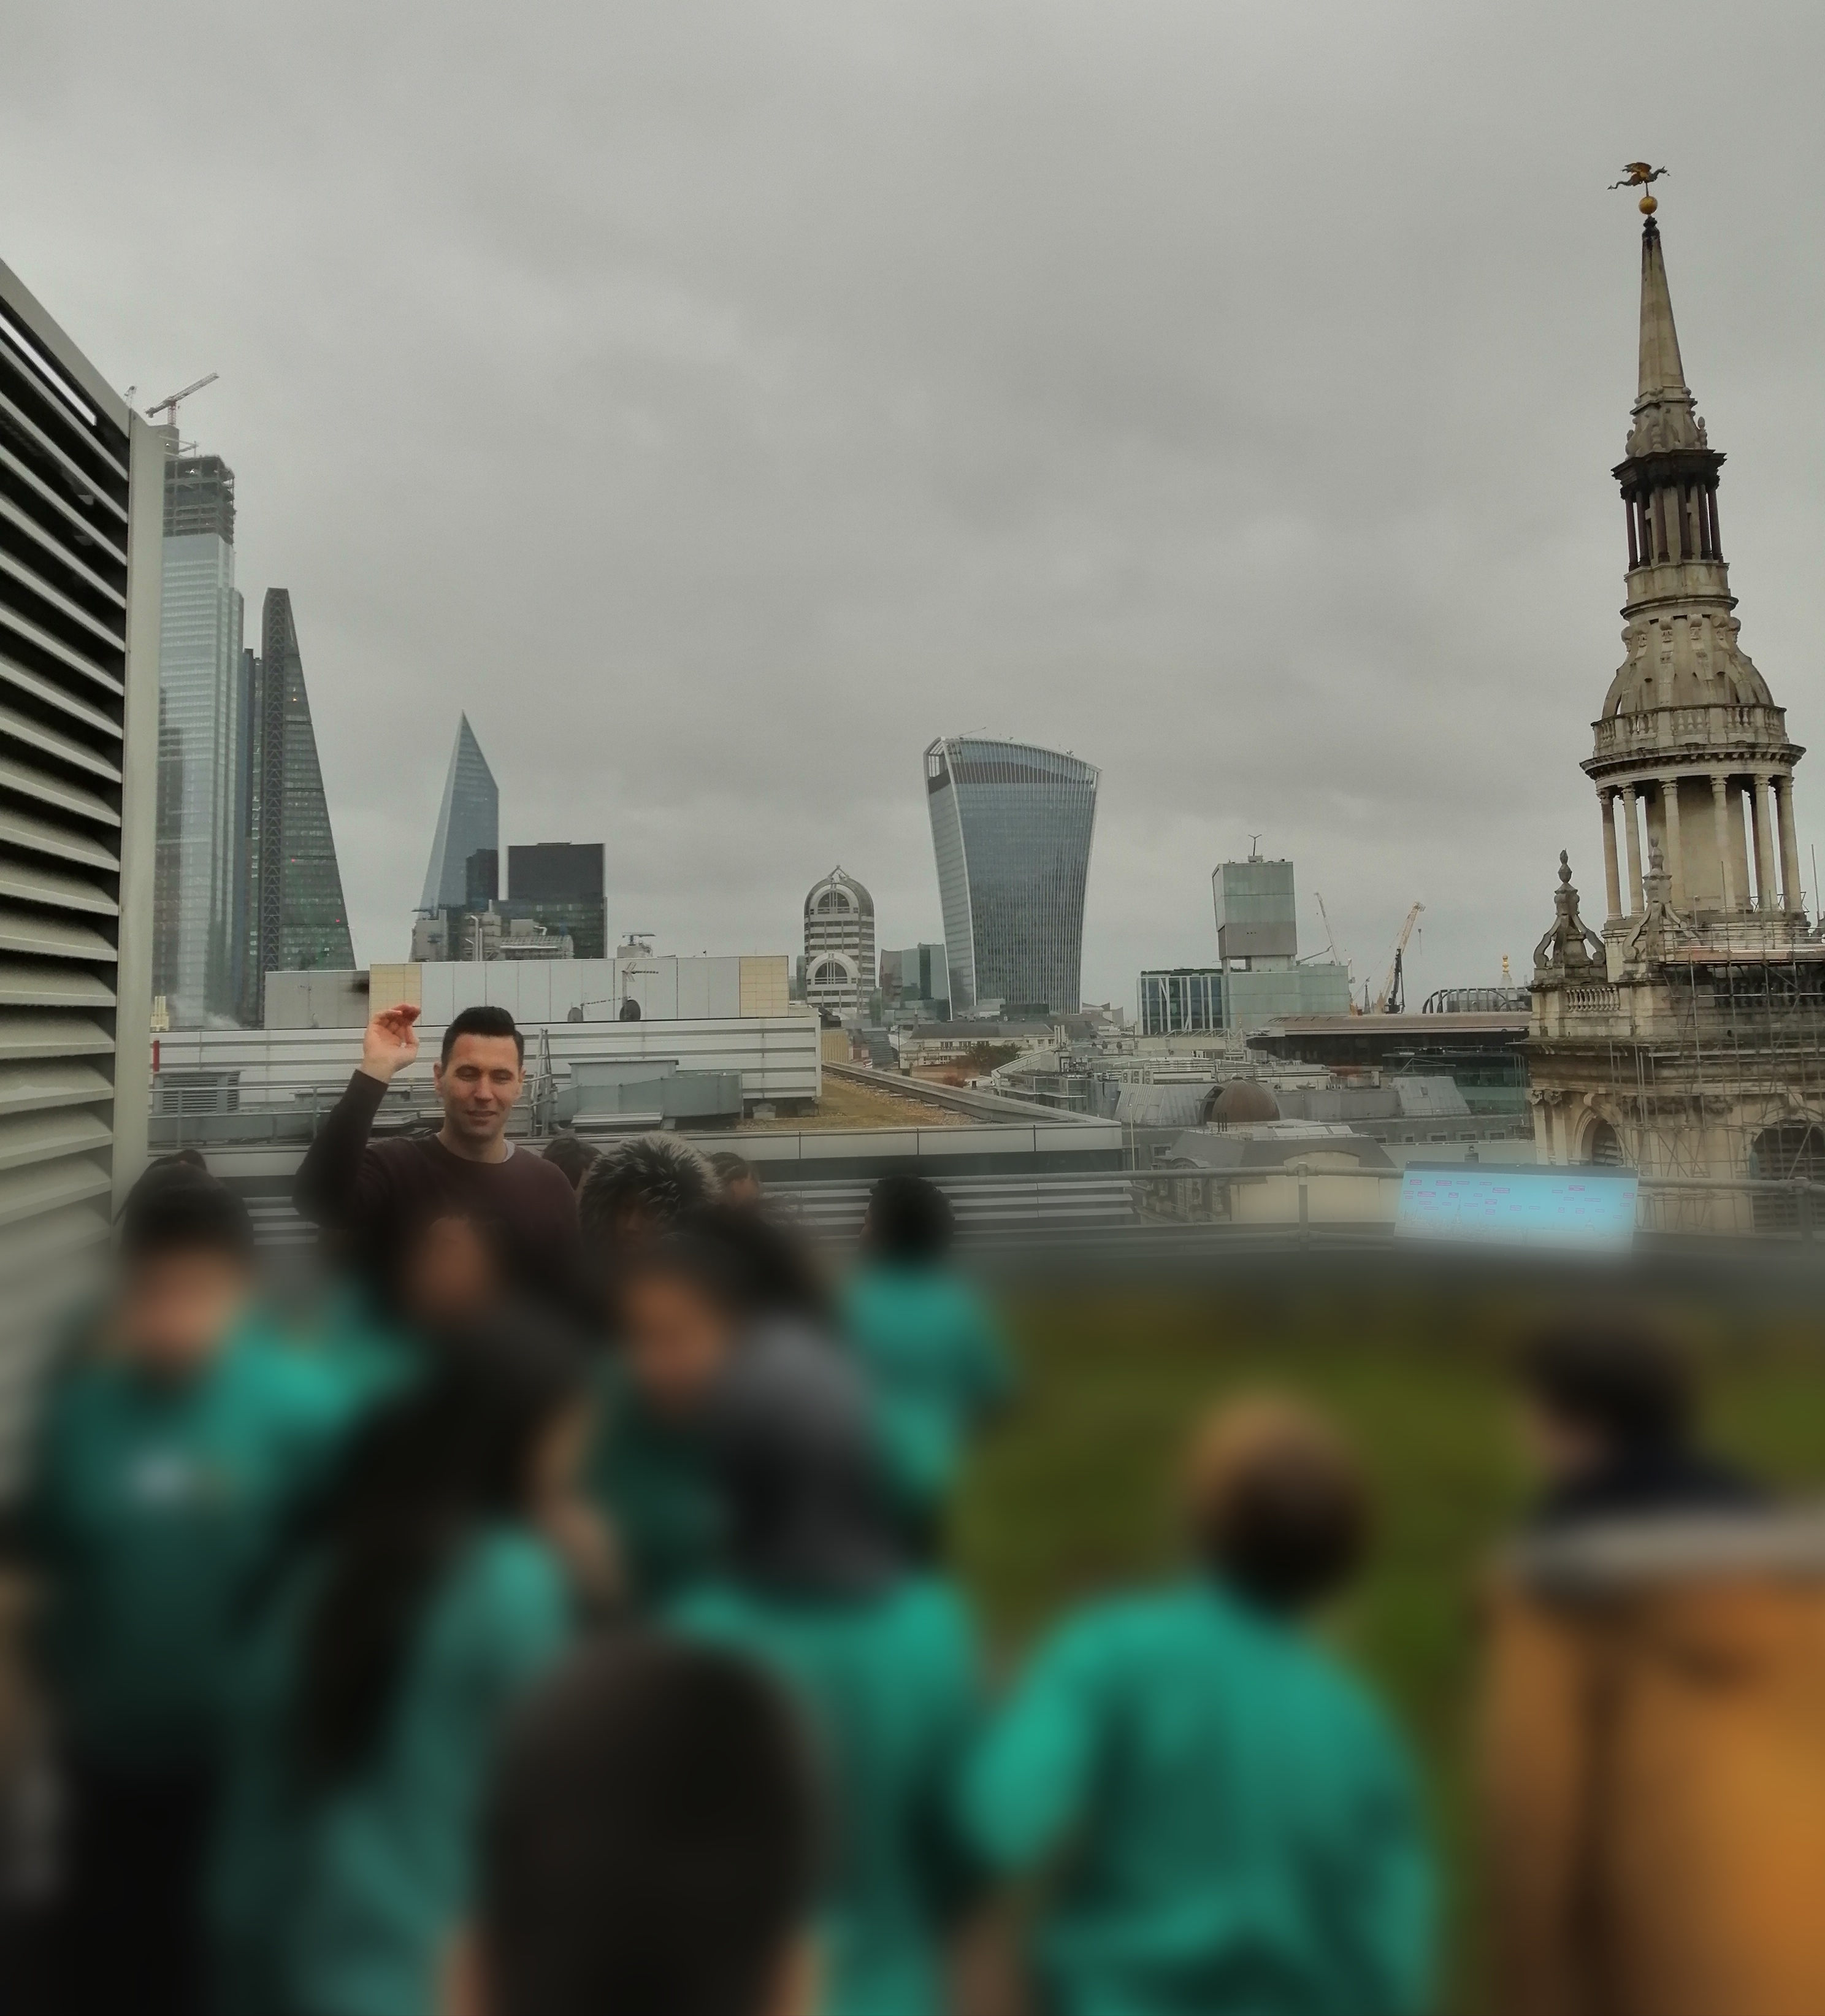 Learners enjoy the view of the city from Eversheds Sutherland's inspiring green roof terrace.